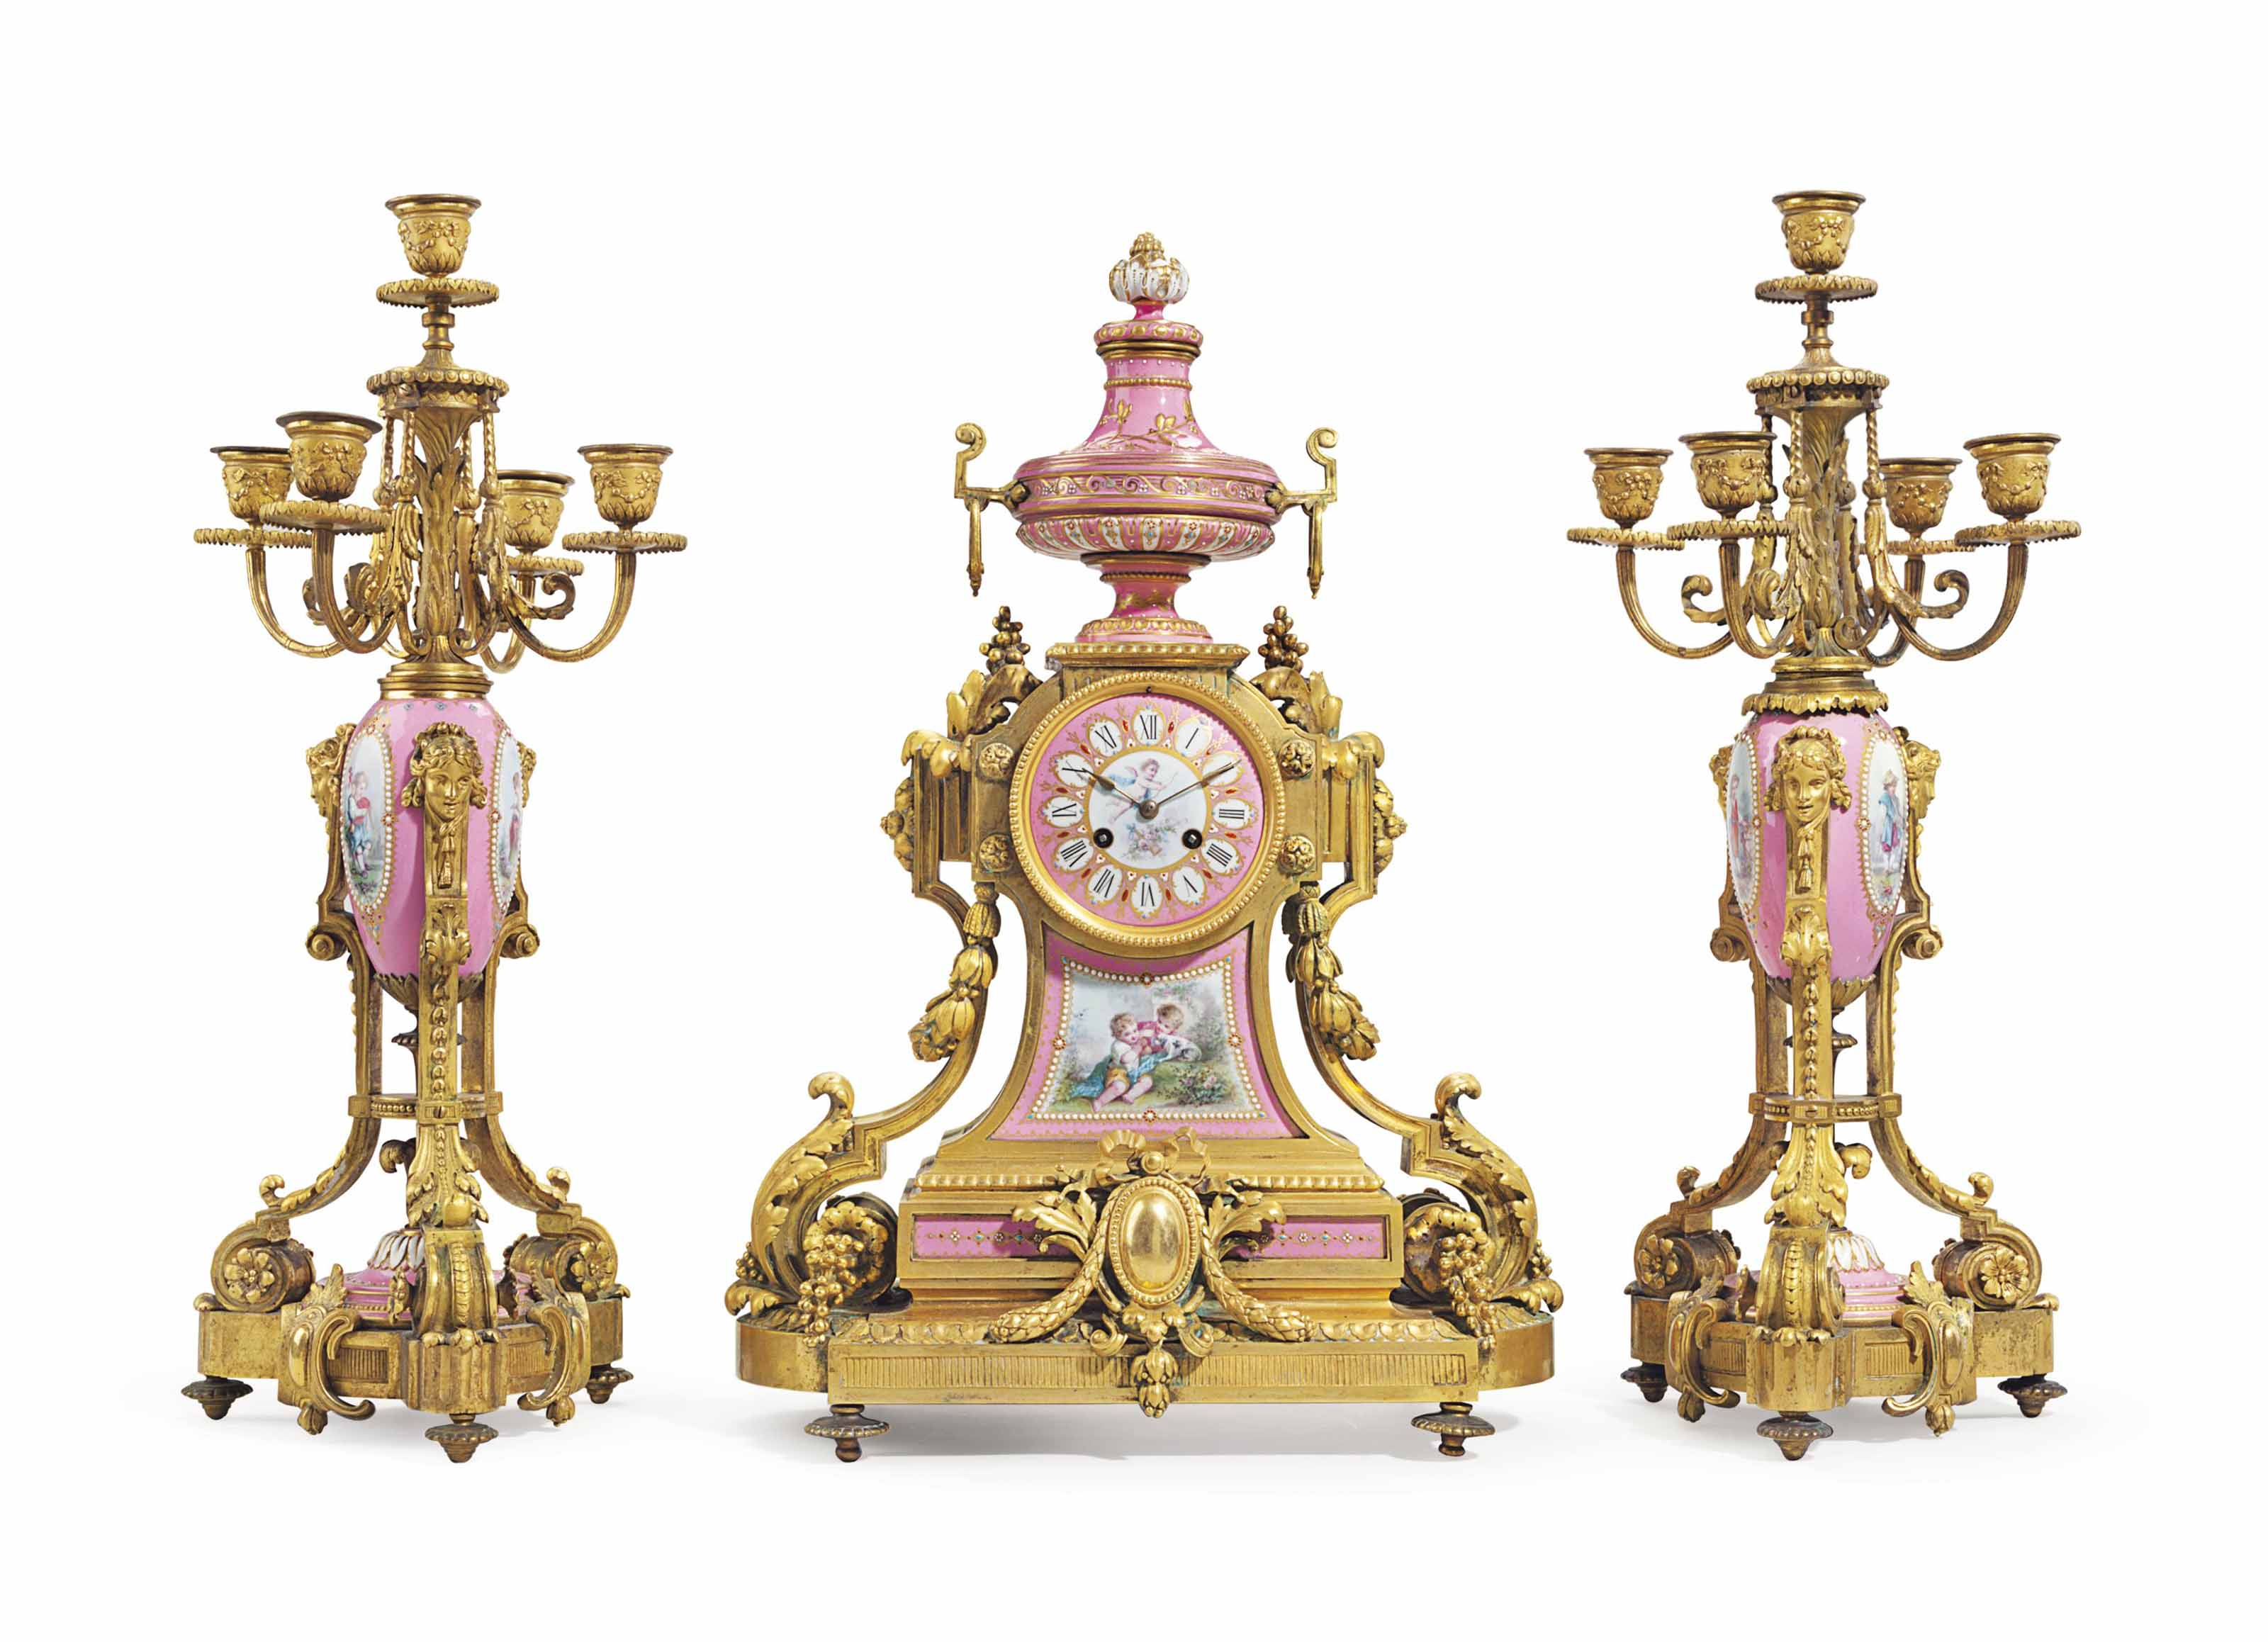 A FRENCH ORMOLU AND SEVRES STYLE PORCELAIN THREE-PIECE CLOCK GARNITURE